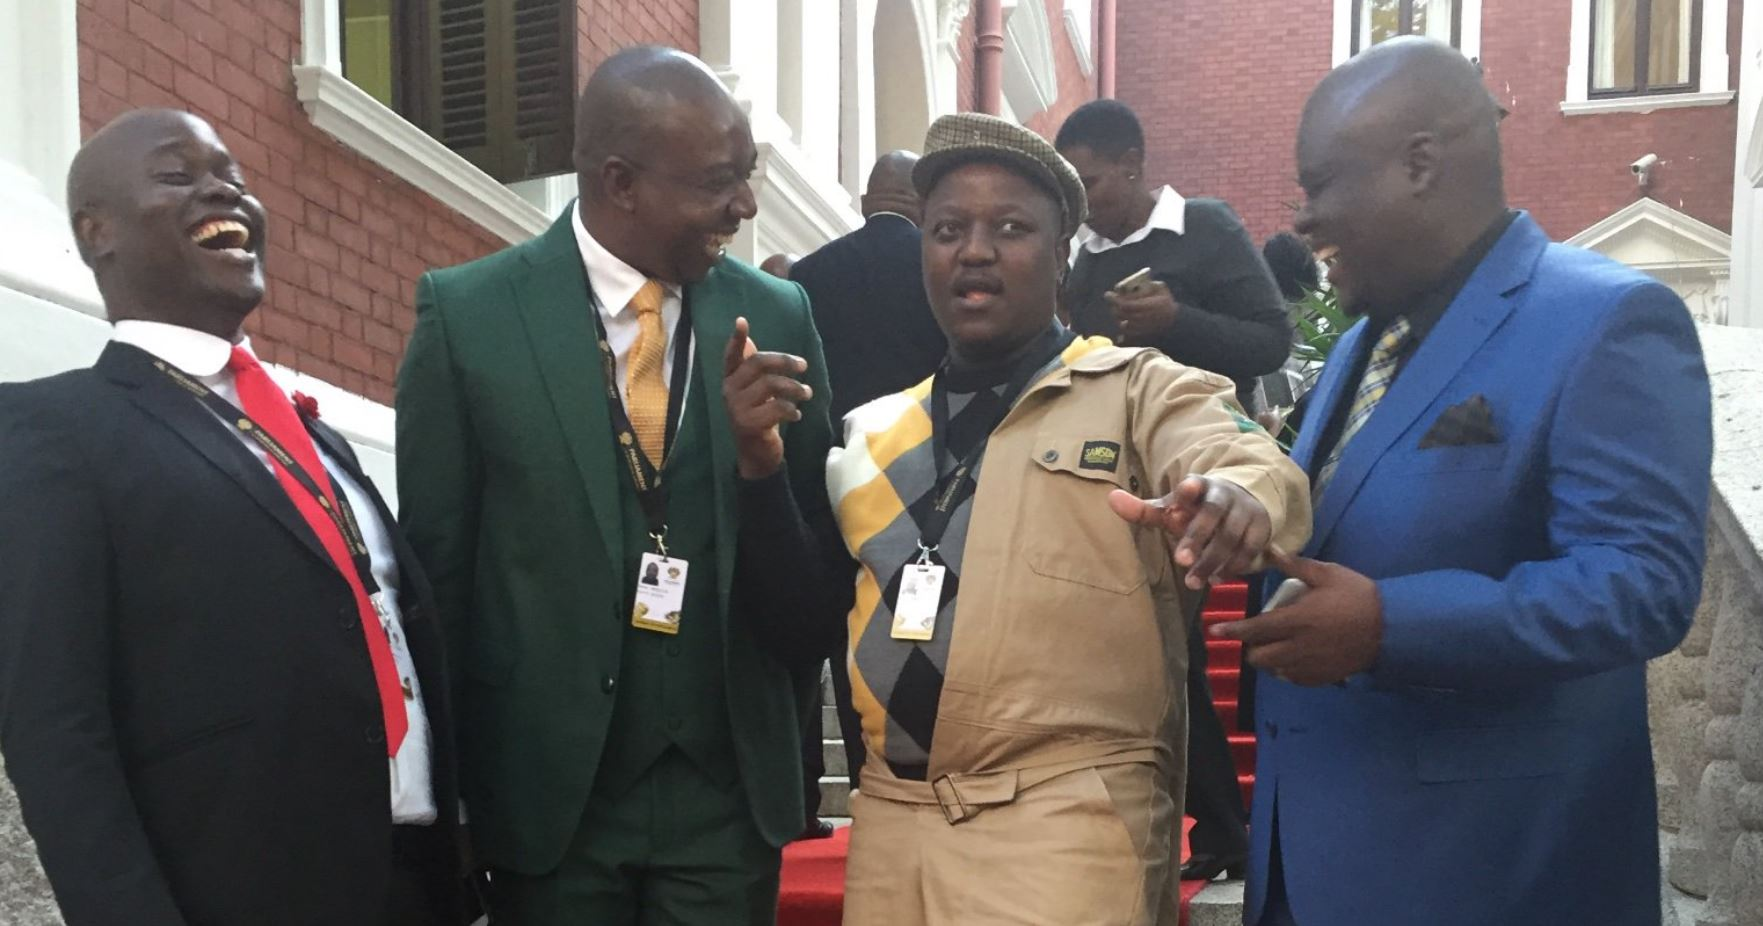 Boy Mamabolo: Anc Mp Removed From Front Of Parly After Malema Spat photo